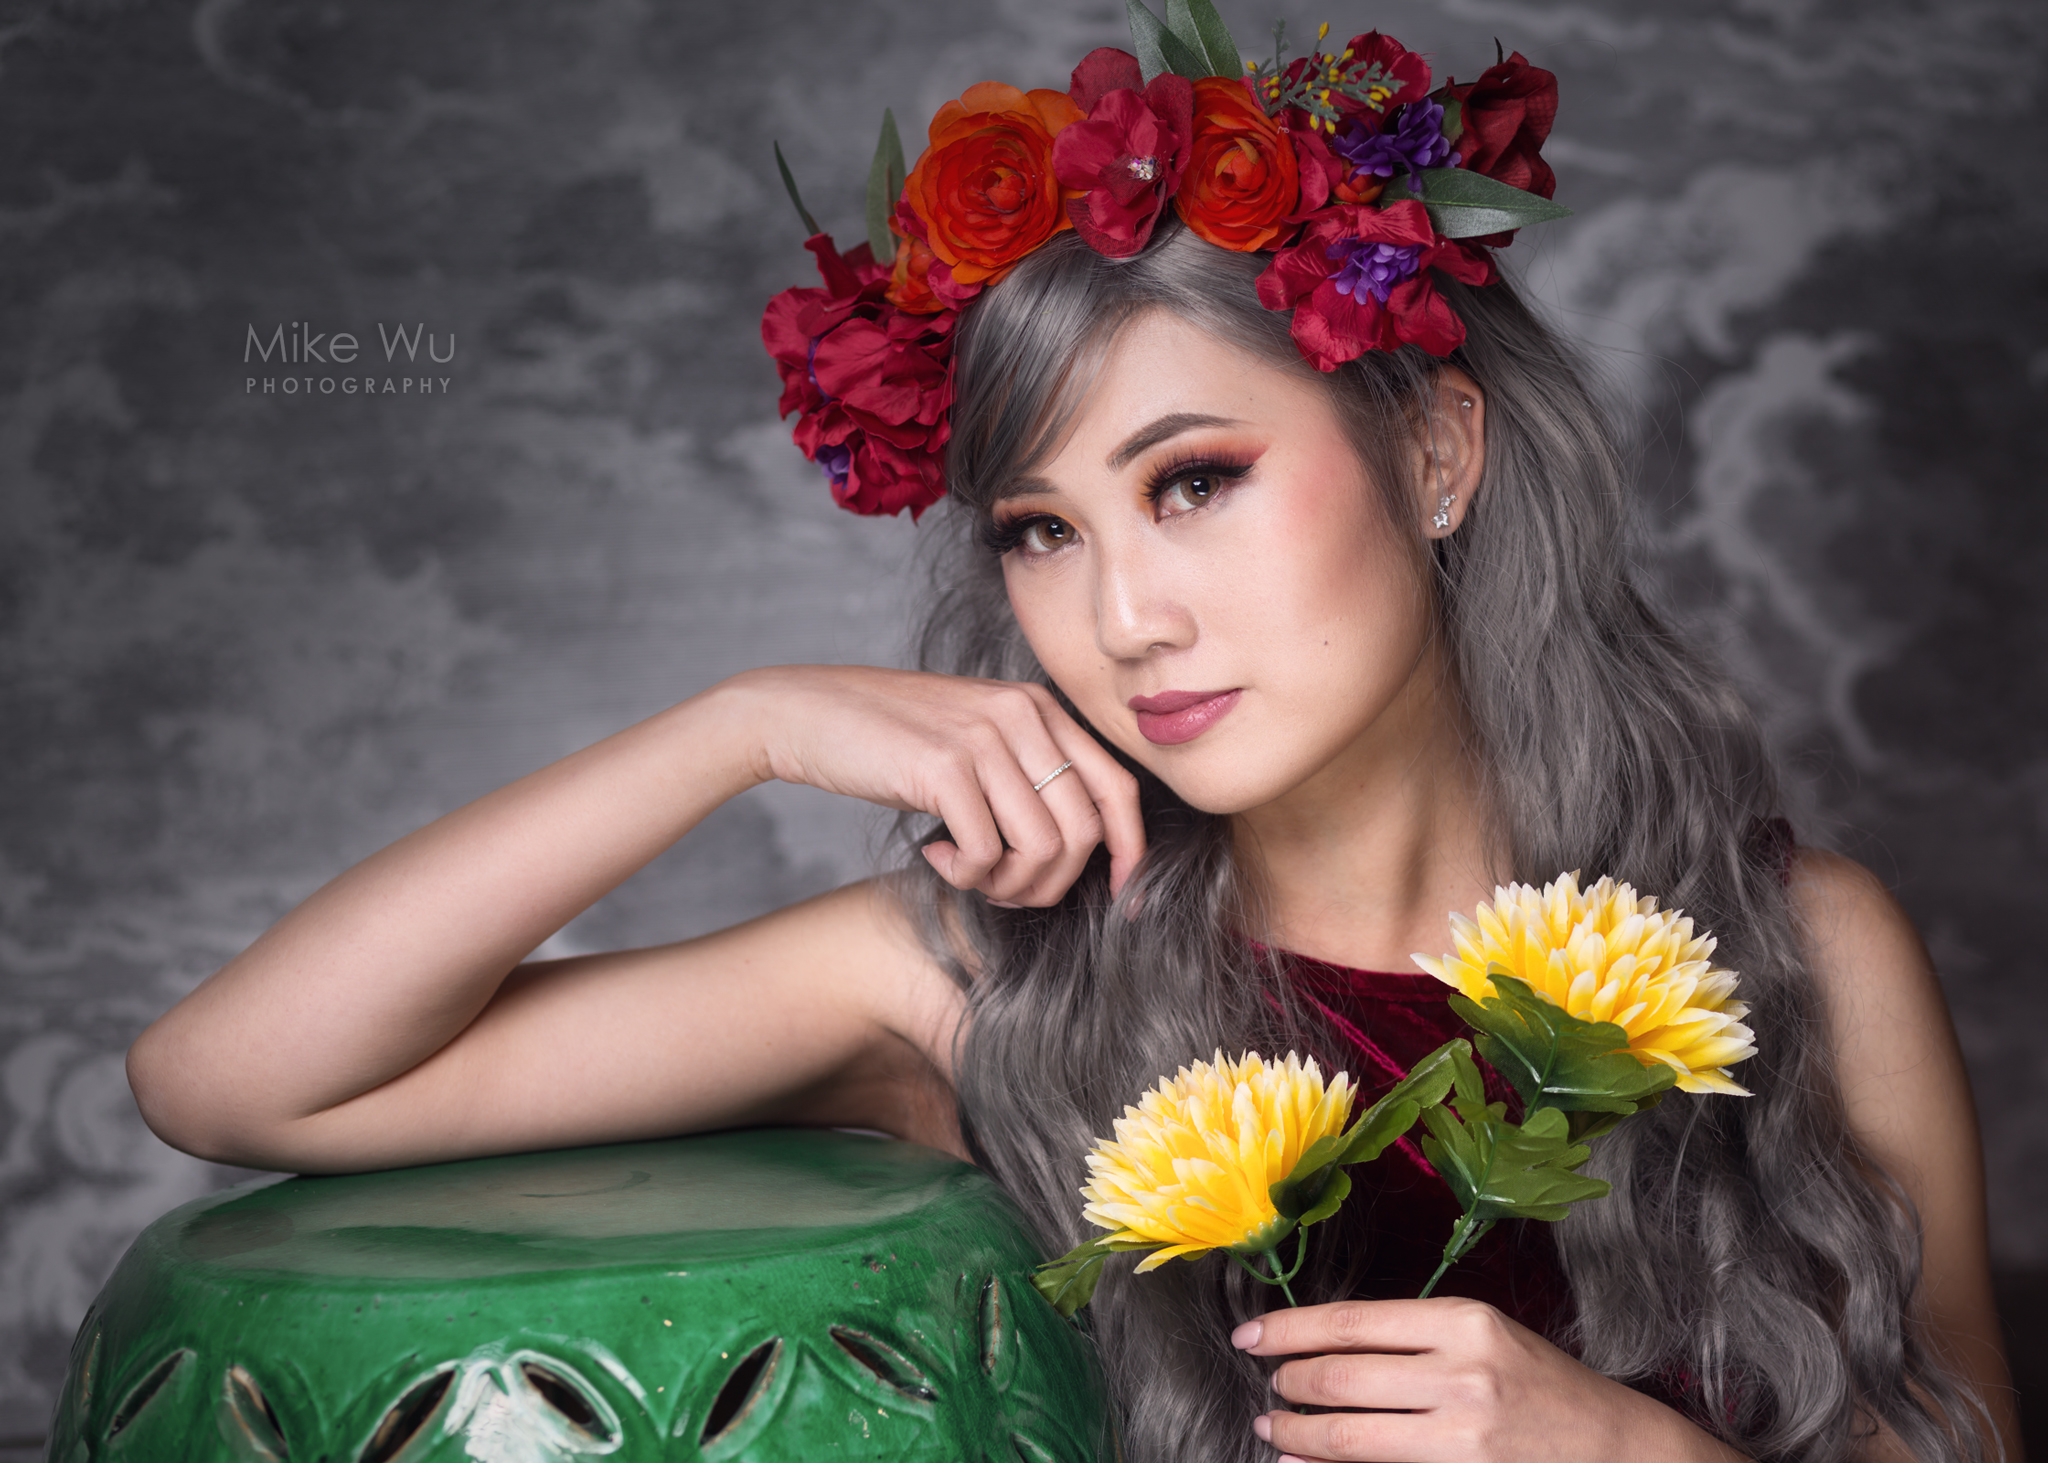 flower, beauty, roses, red, green,vase, dress, makeup, vancouver, portrait, fashion, glamour